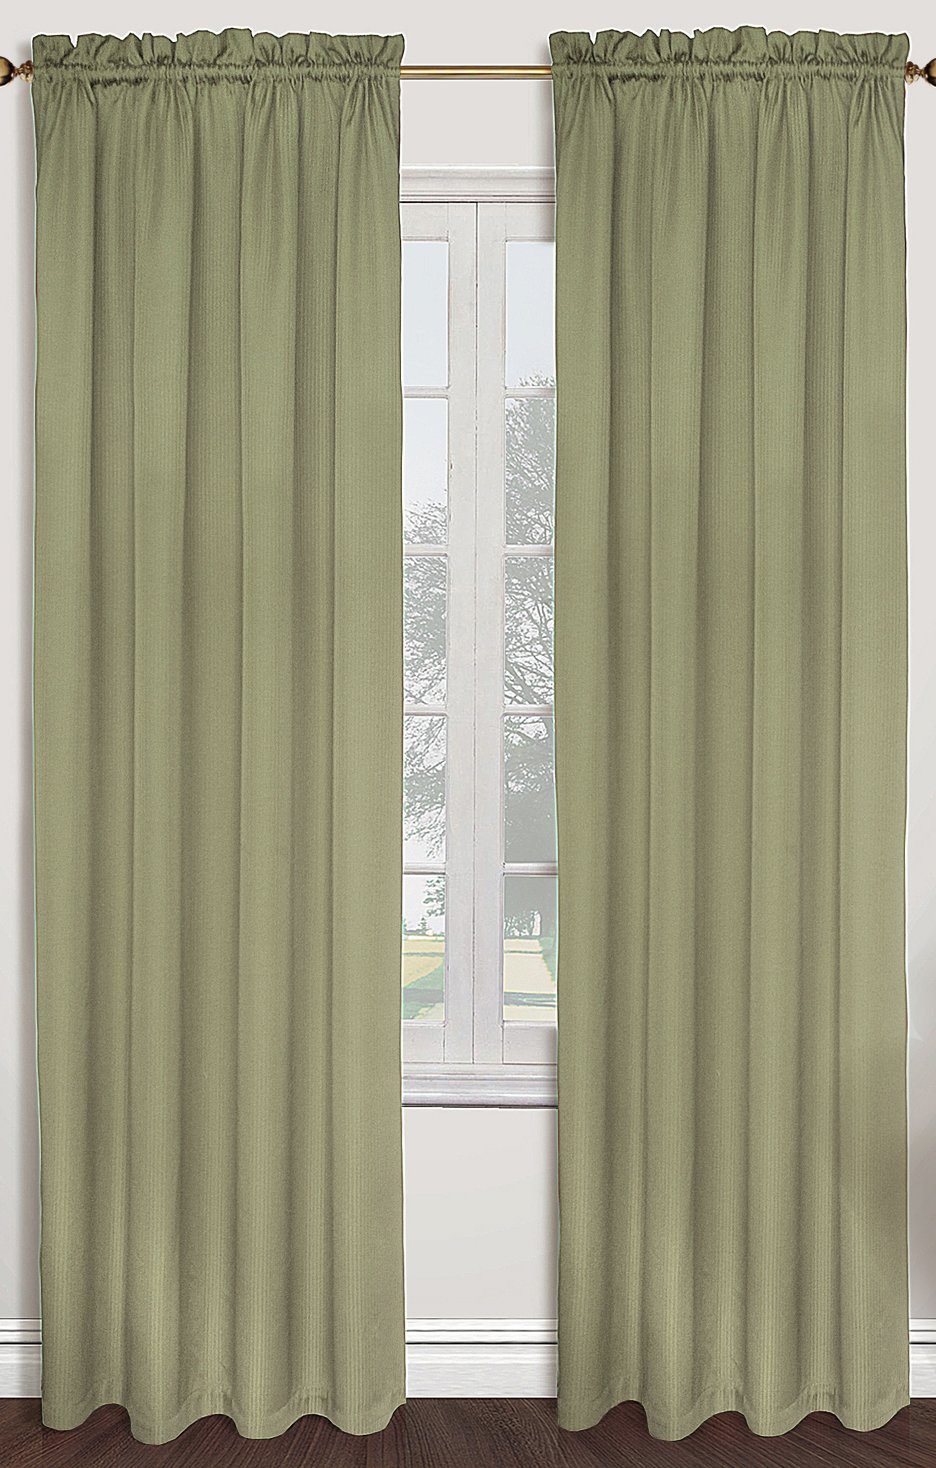 United Curtain Sterling Woven Window Curtain Panel, 40 by 63-Inch, Sage - Sold As Separates Fabric Content: 100% Polyester Care Instructions: Machine Wash Cold, Tumble Dry Low, Cool Iron, Never Bleach - living-room-soft-furnishings, living-room, draperies-curtains-shades - 71uC1h602%2BL -